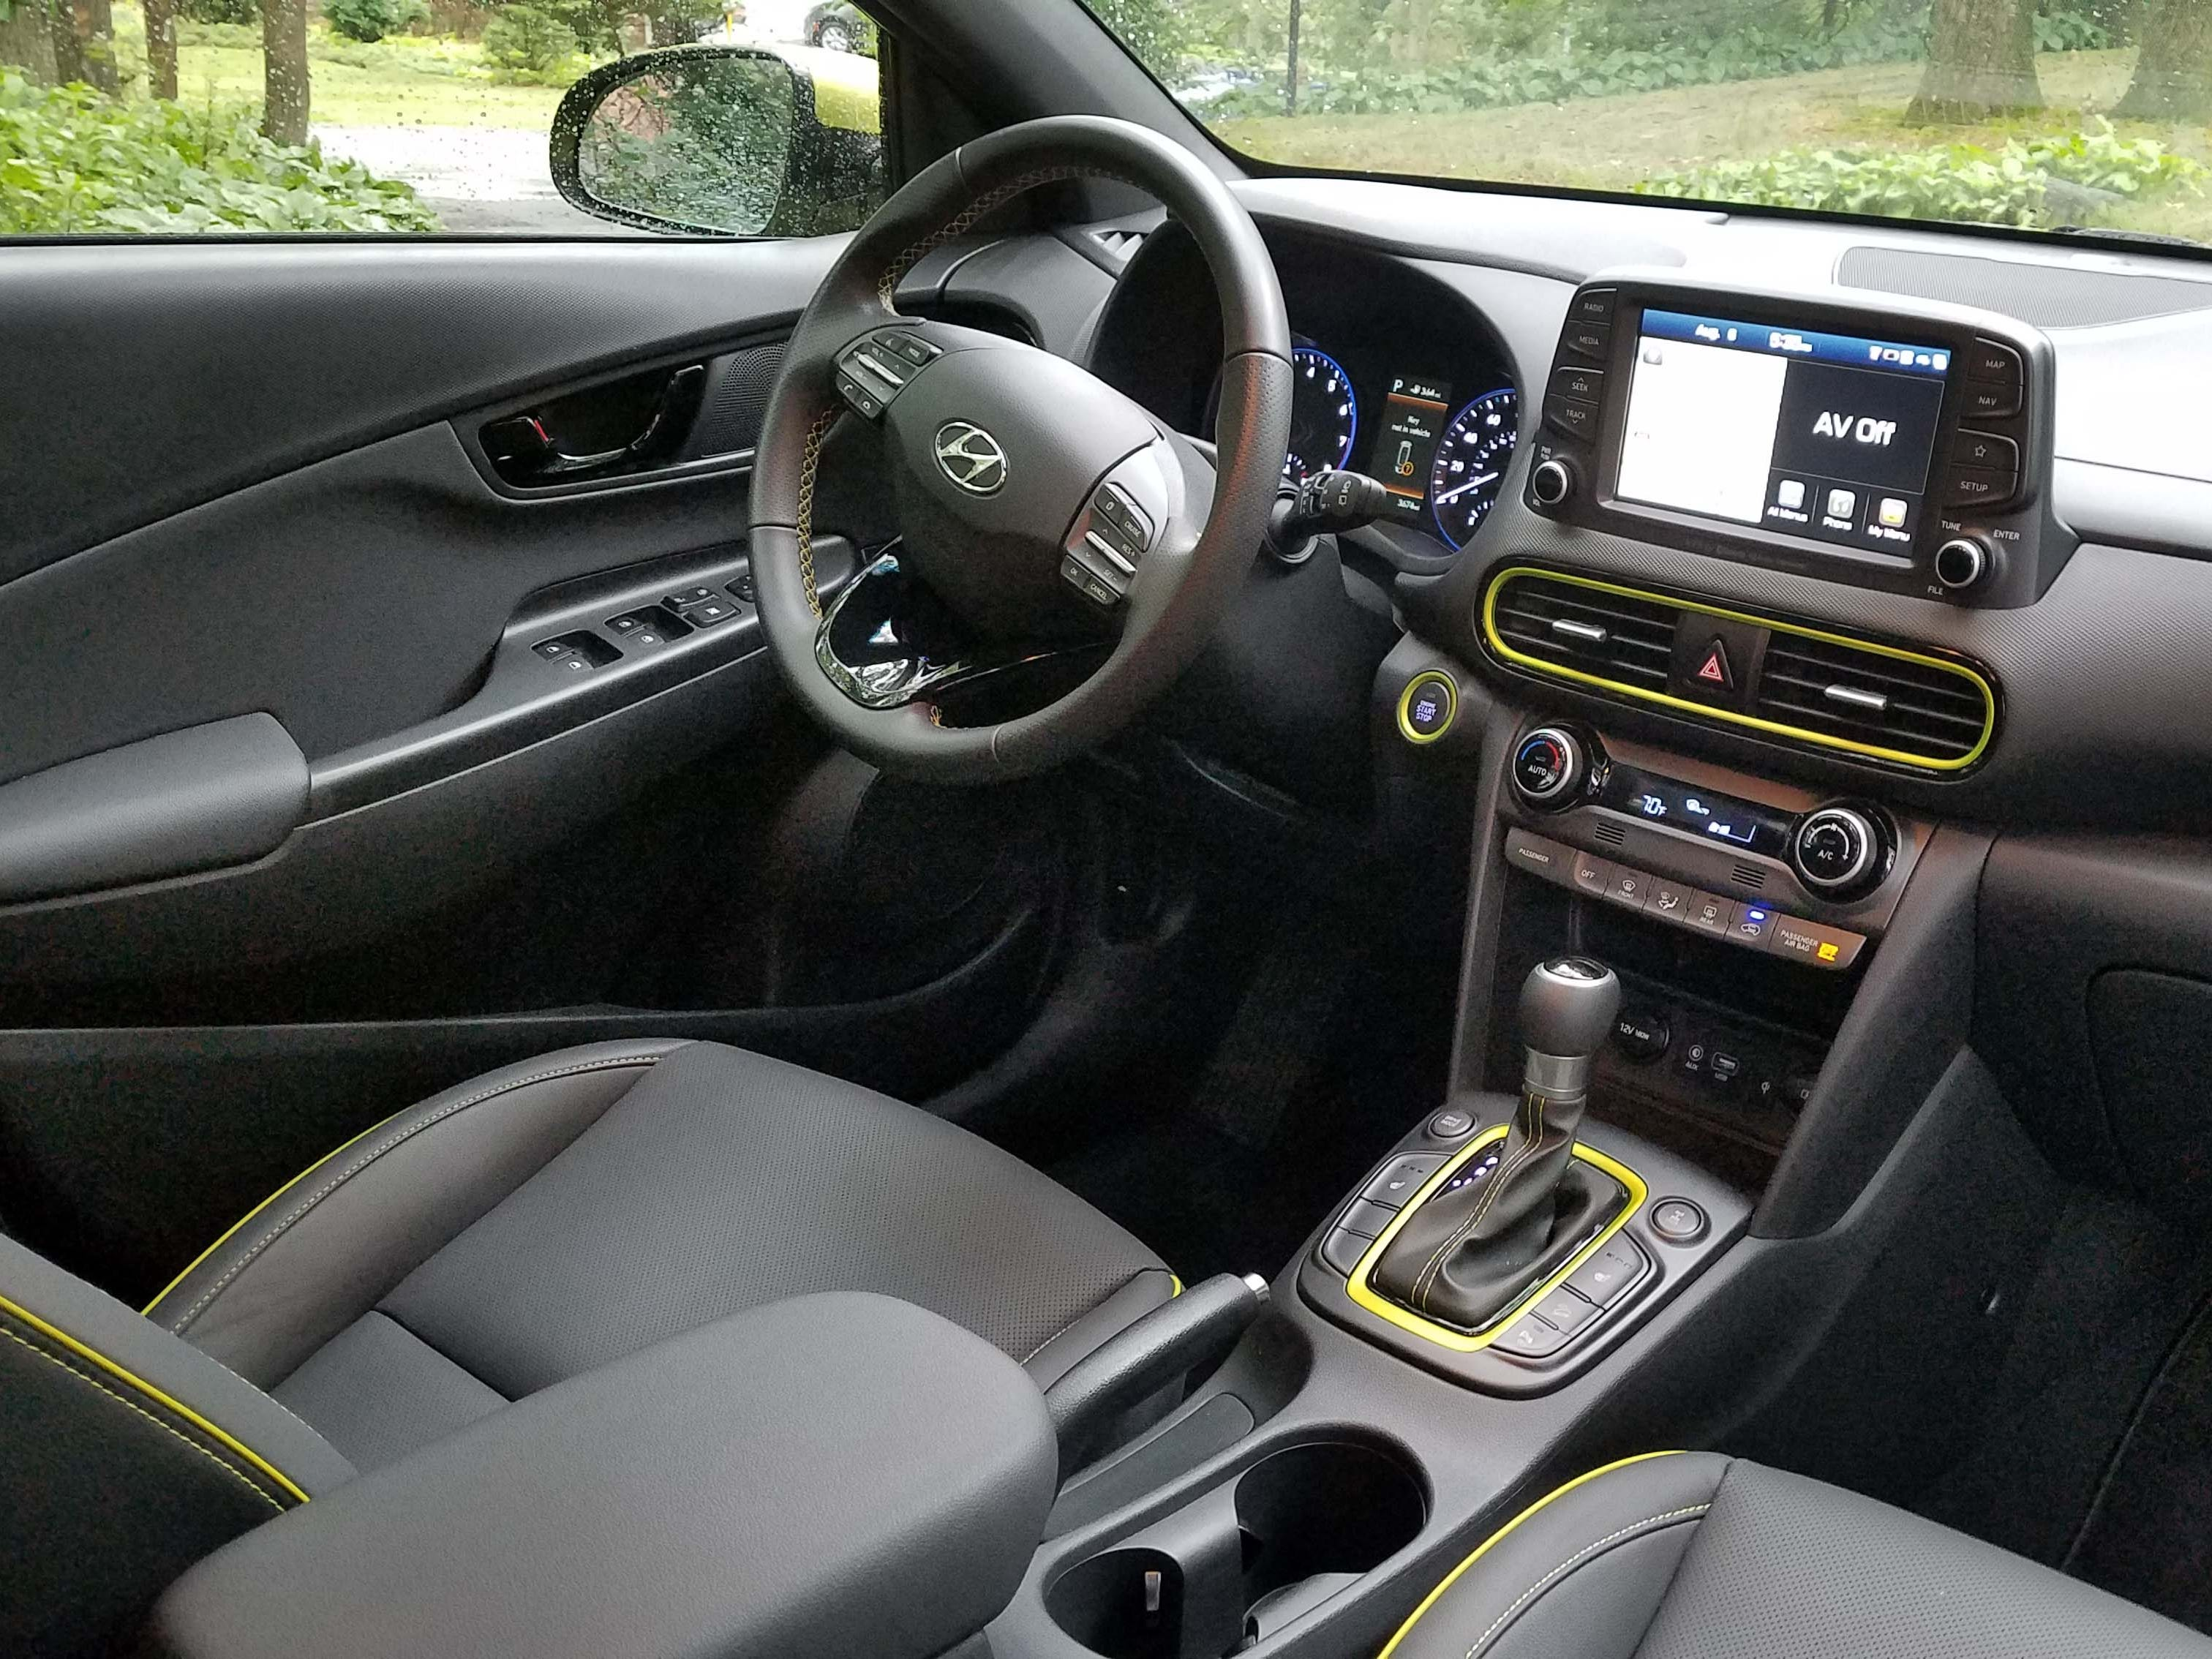 Funky outside, conventional inside. The 2018 Hyundai Kona sports a familiar Hyundai interior with tablet screen, intuitive control knobs, and nice materials.